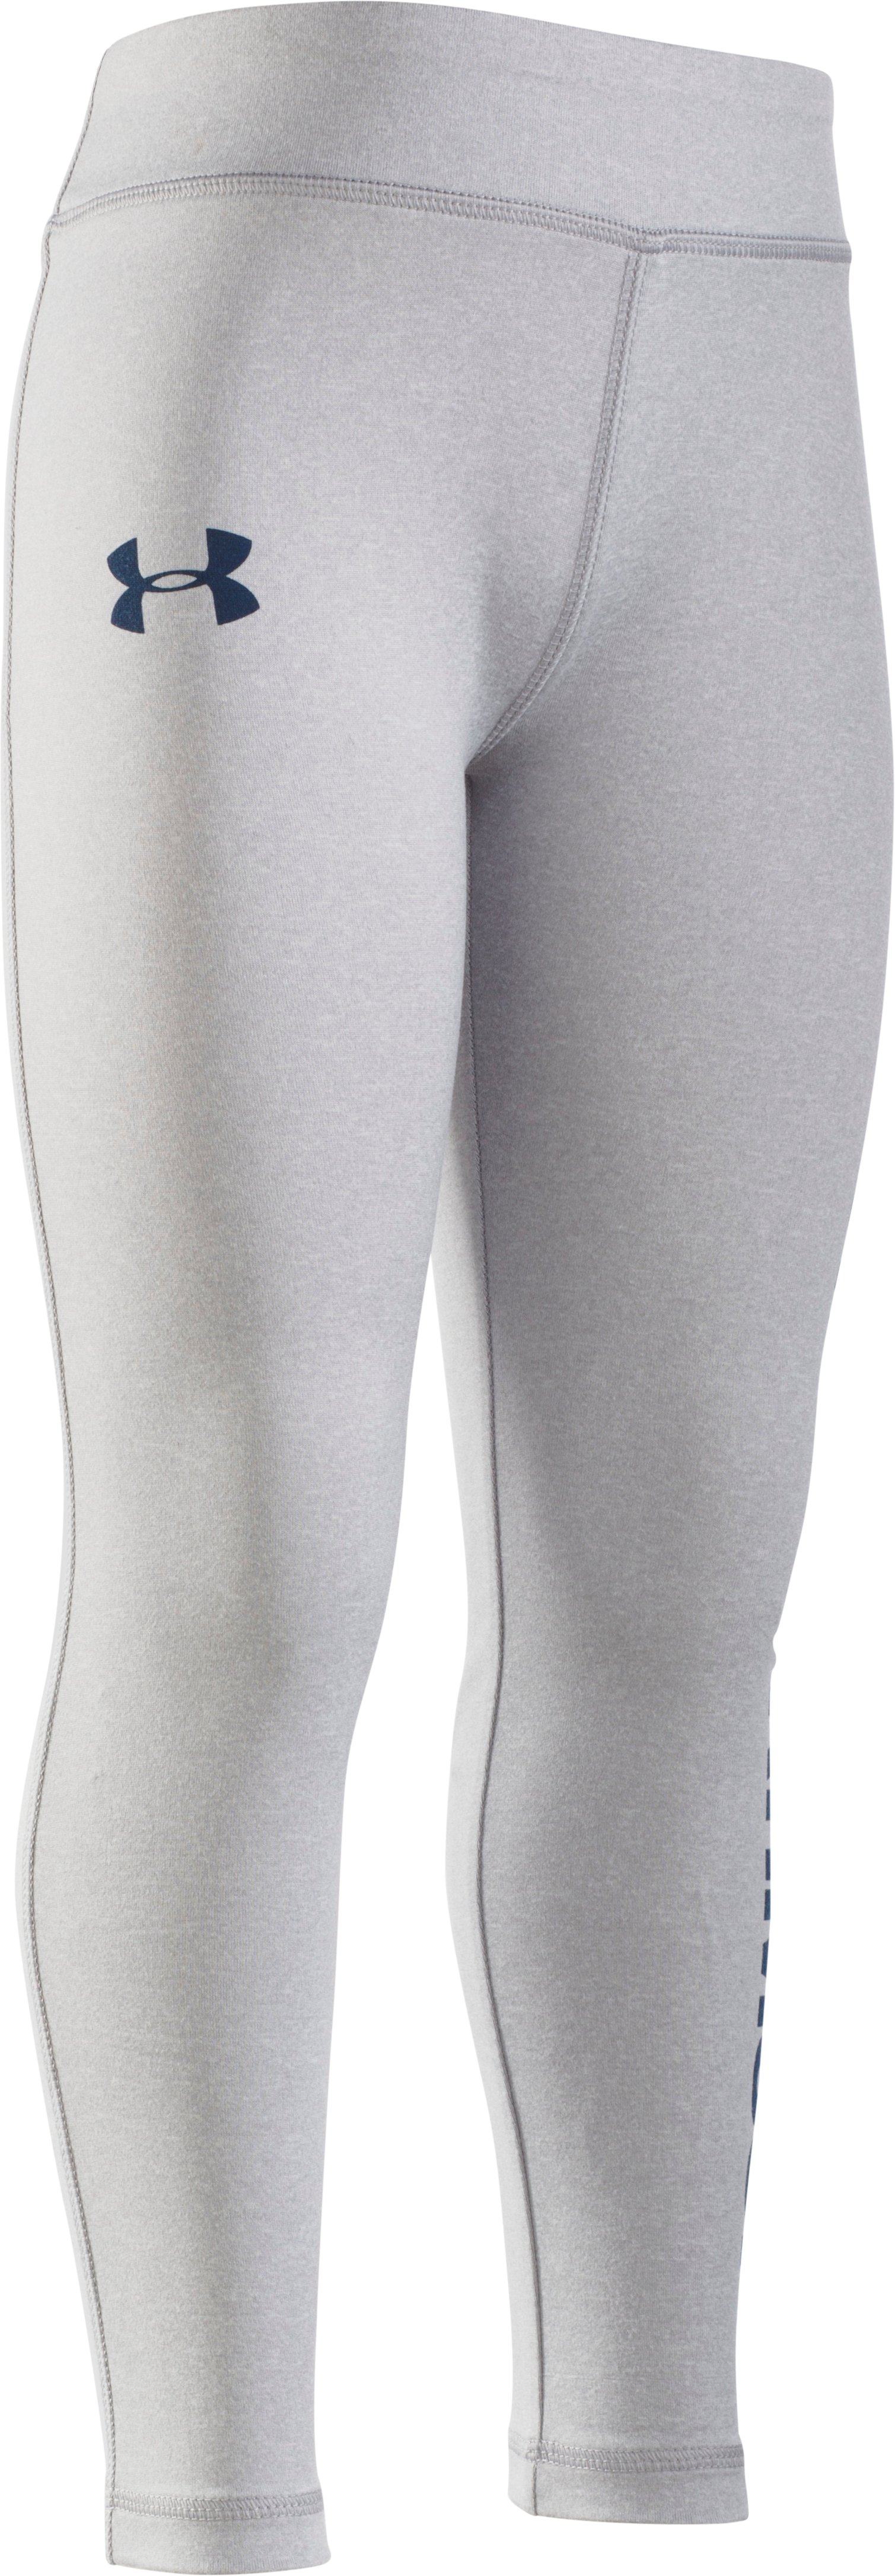 Girls' Toddler UA Favorite Graphic Leggings, AIR FORCE GRAY HEATHER, zoomed image